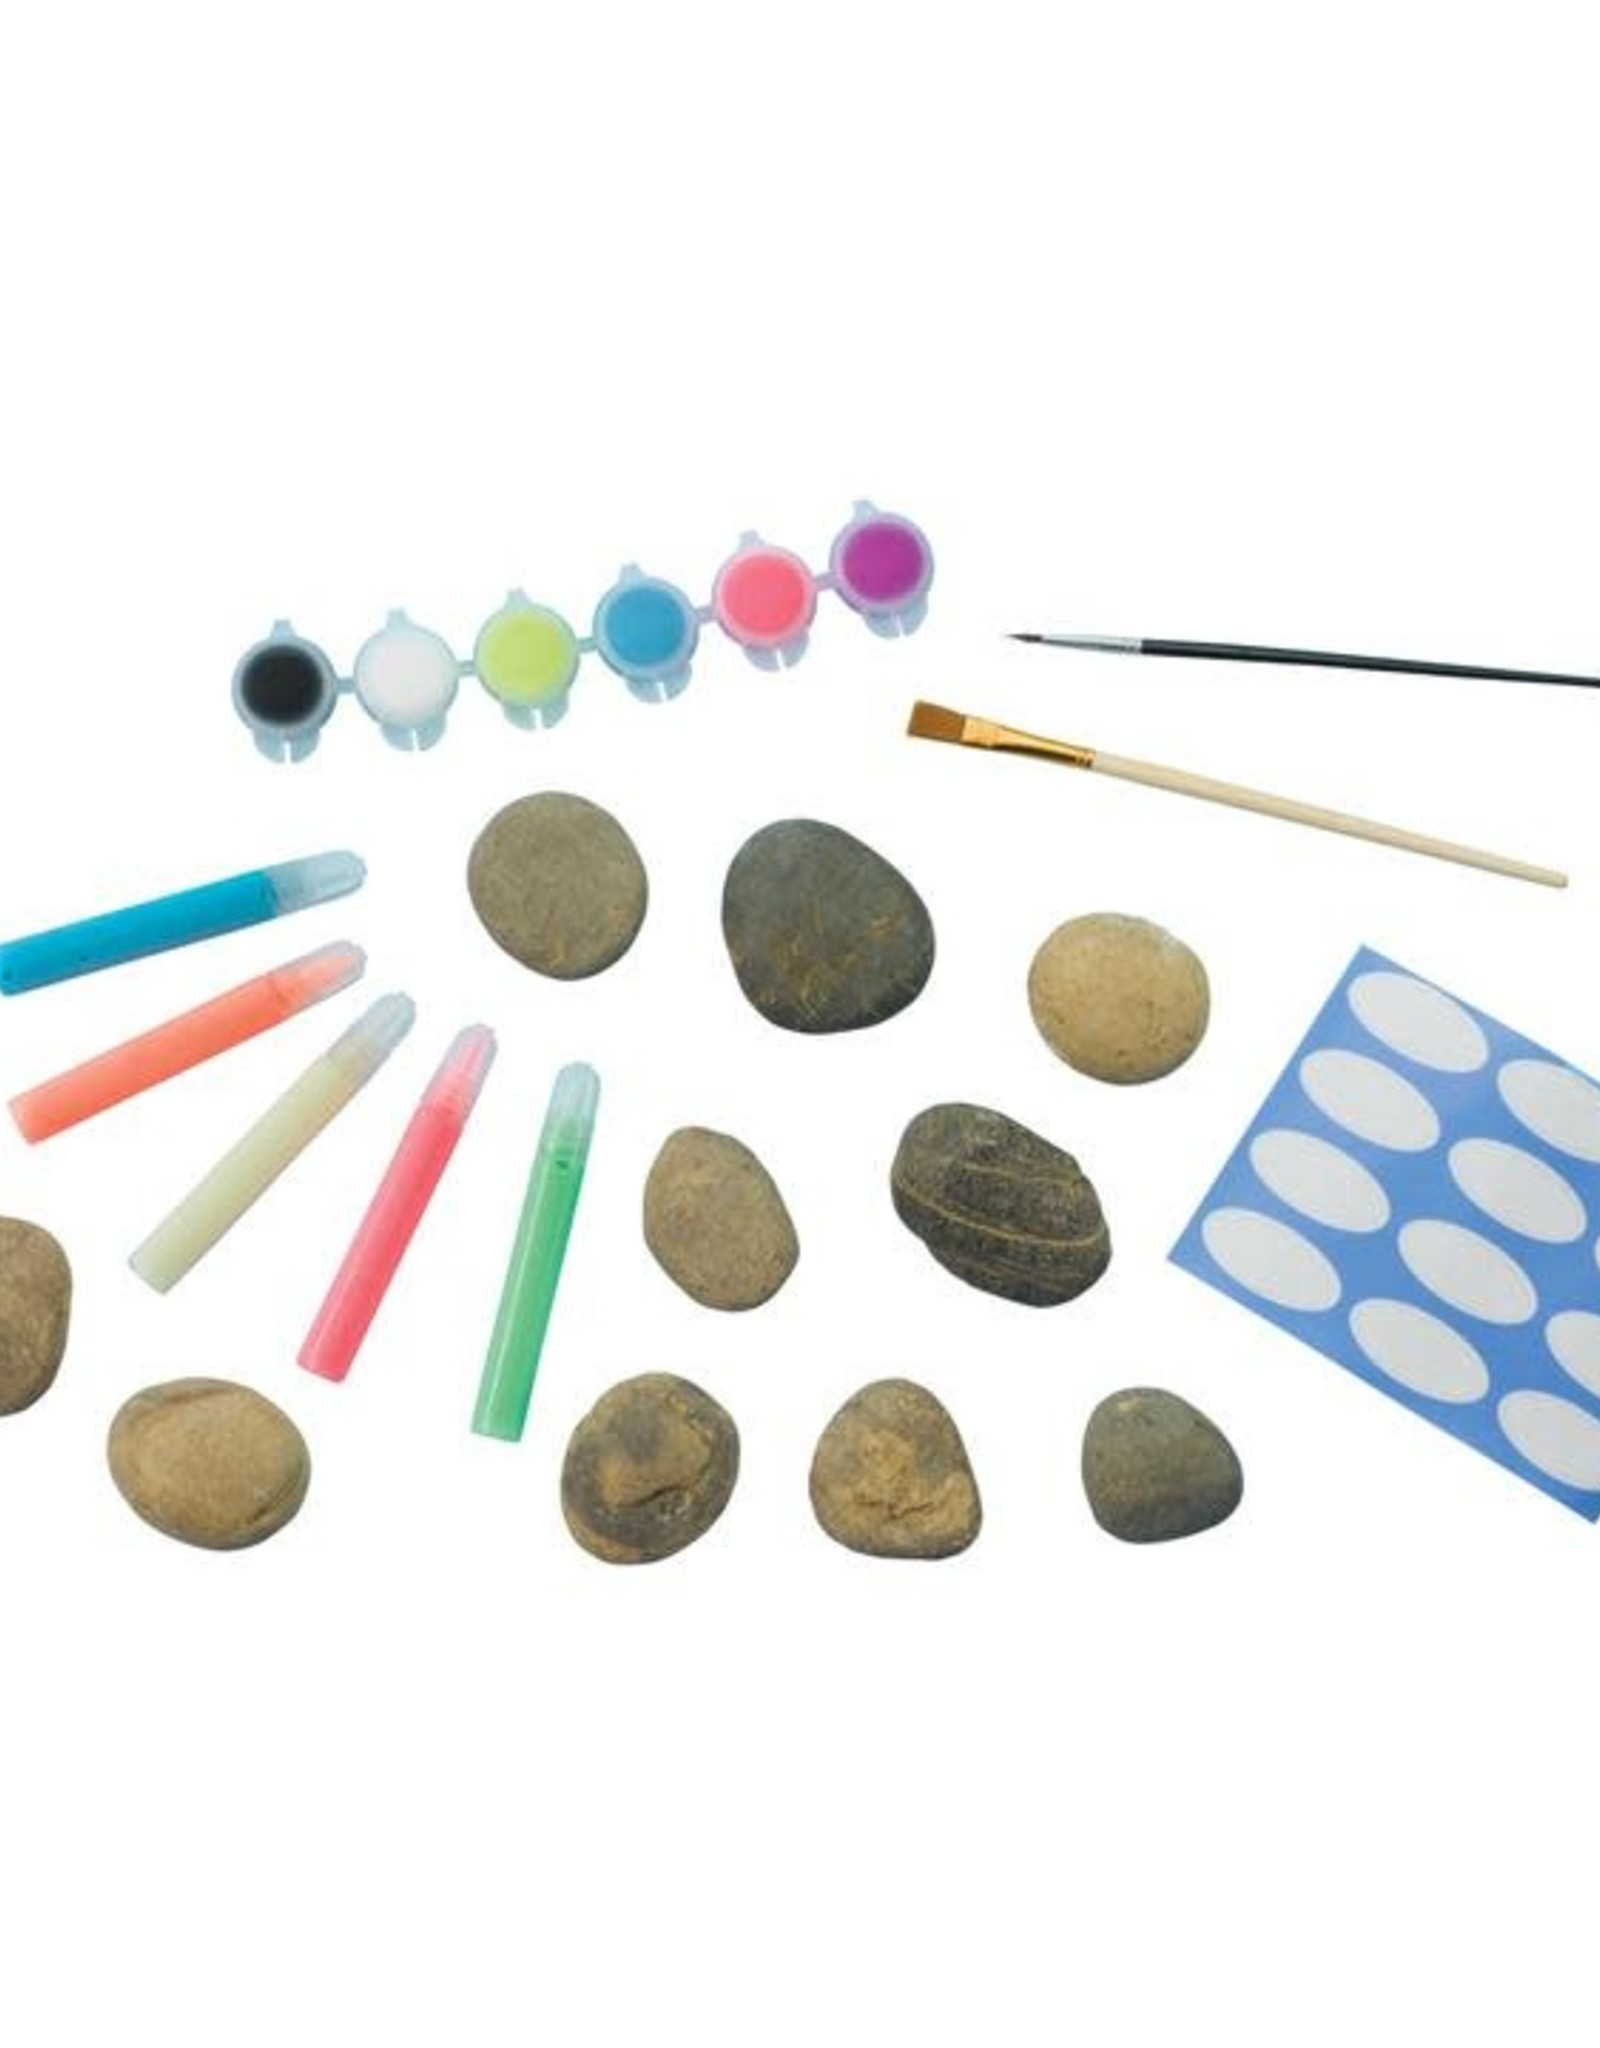 Faber-Castell Glow in the Dark Rock Painting Kit